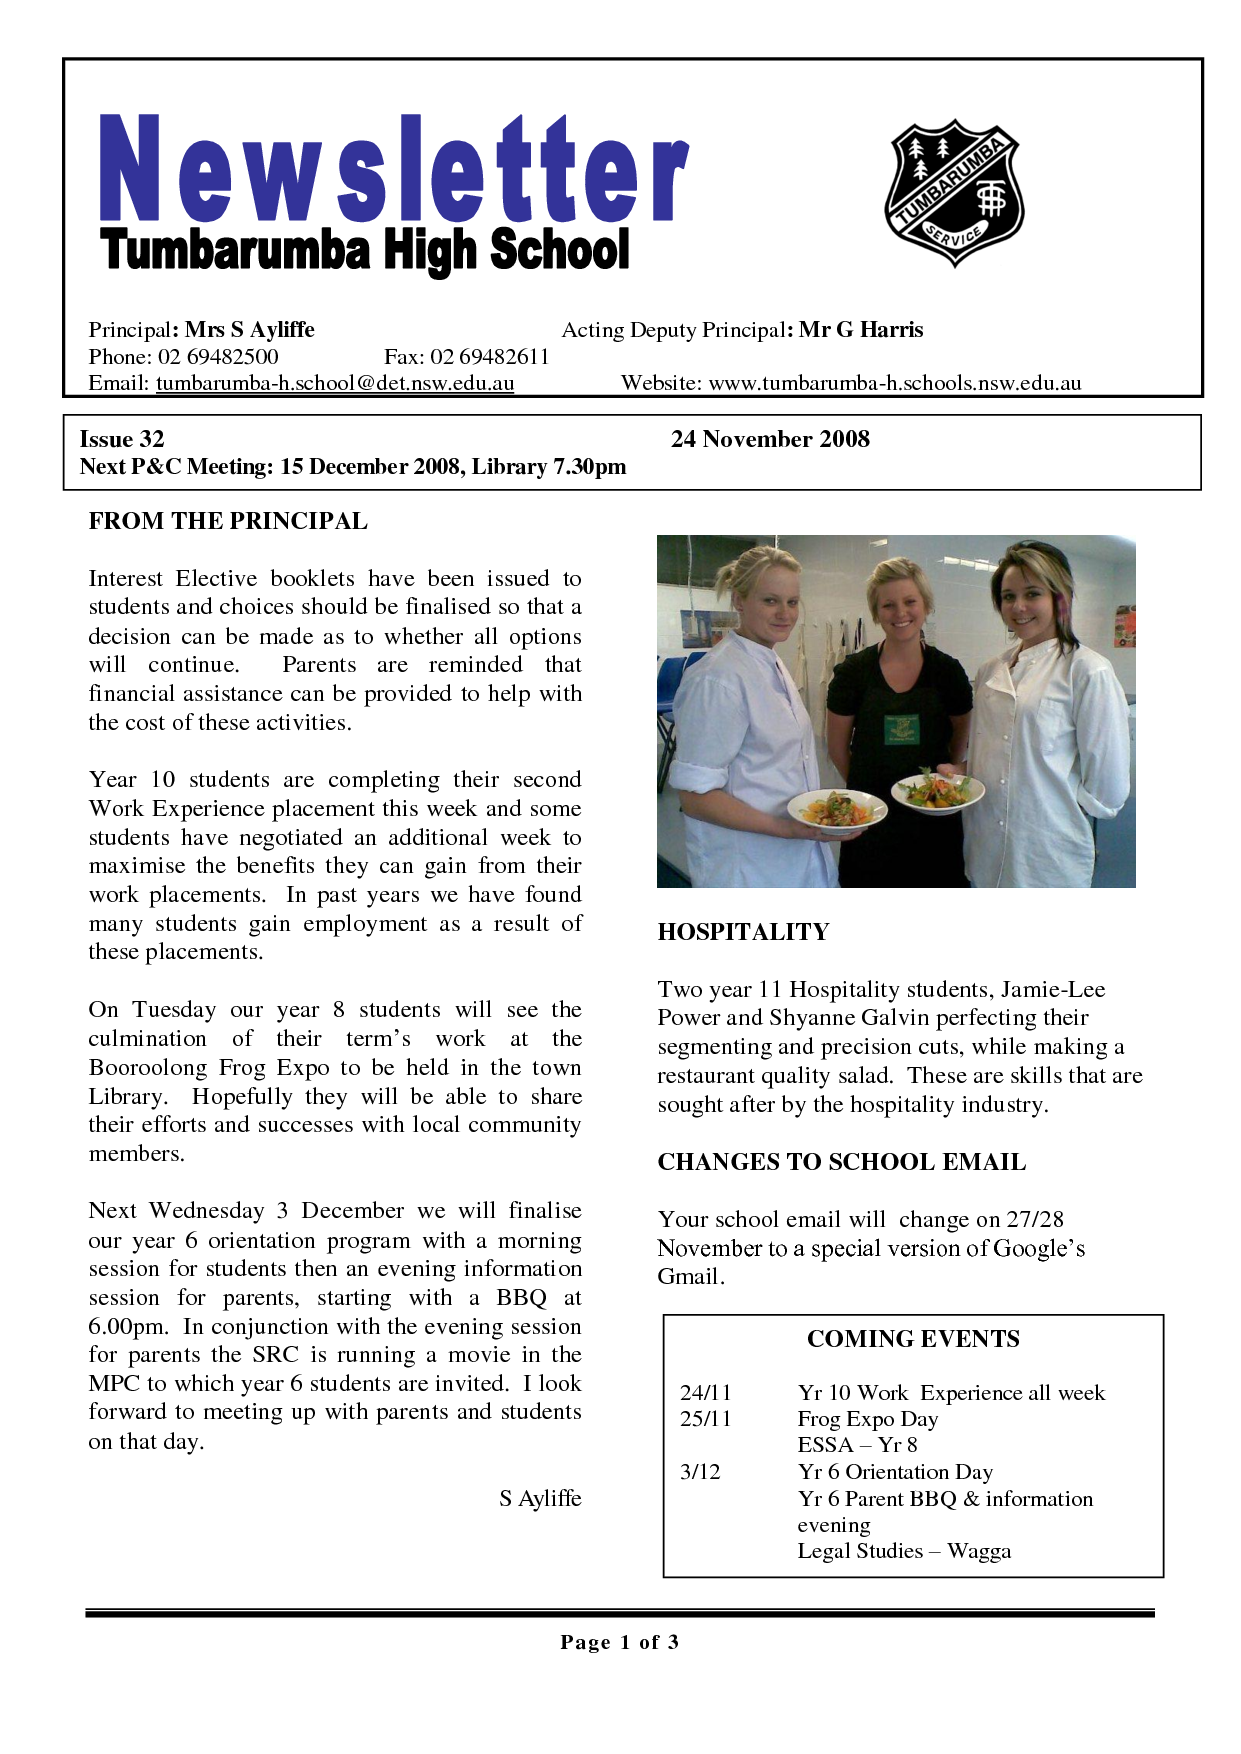 17 awesome high school newsletter templates images for Class newsletter ideas